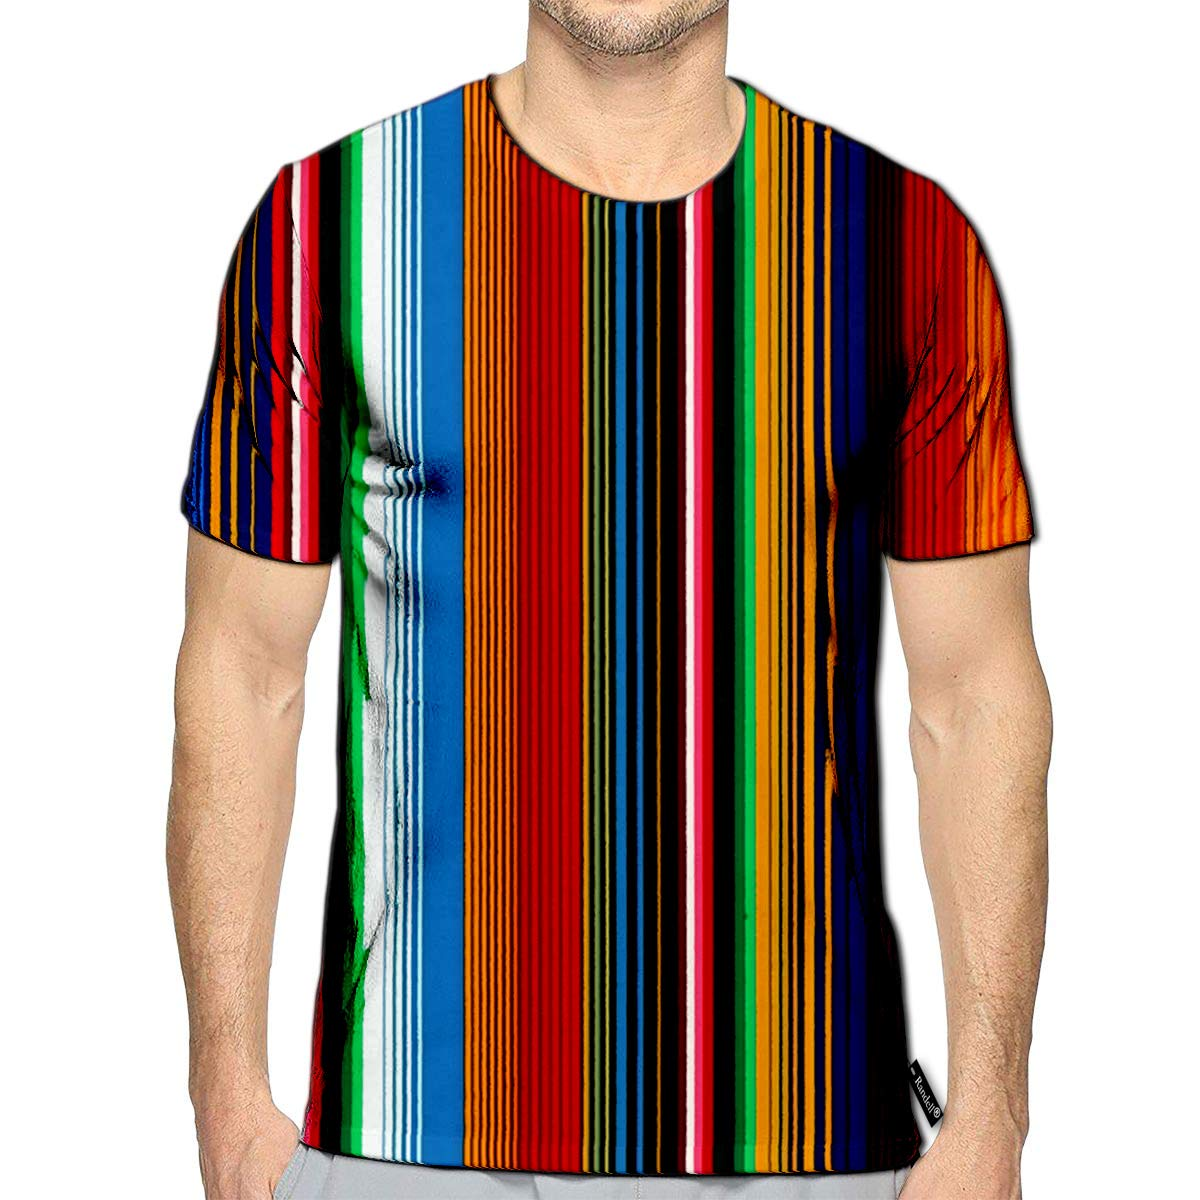 3D Printed T-Shirts Surfing Concept Vintage Style Short Sleeve Tops Tees